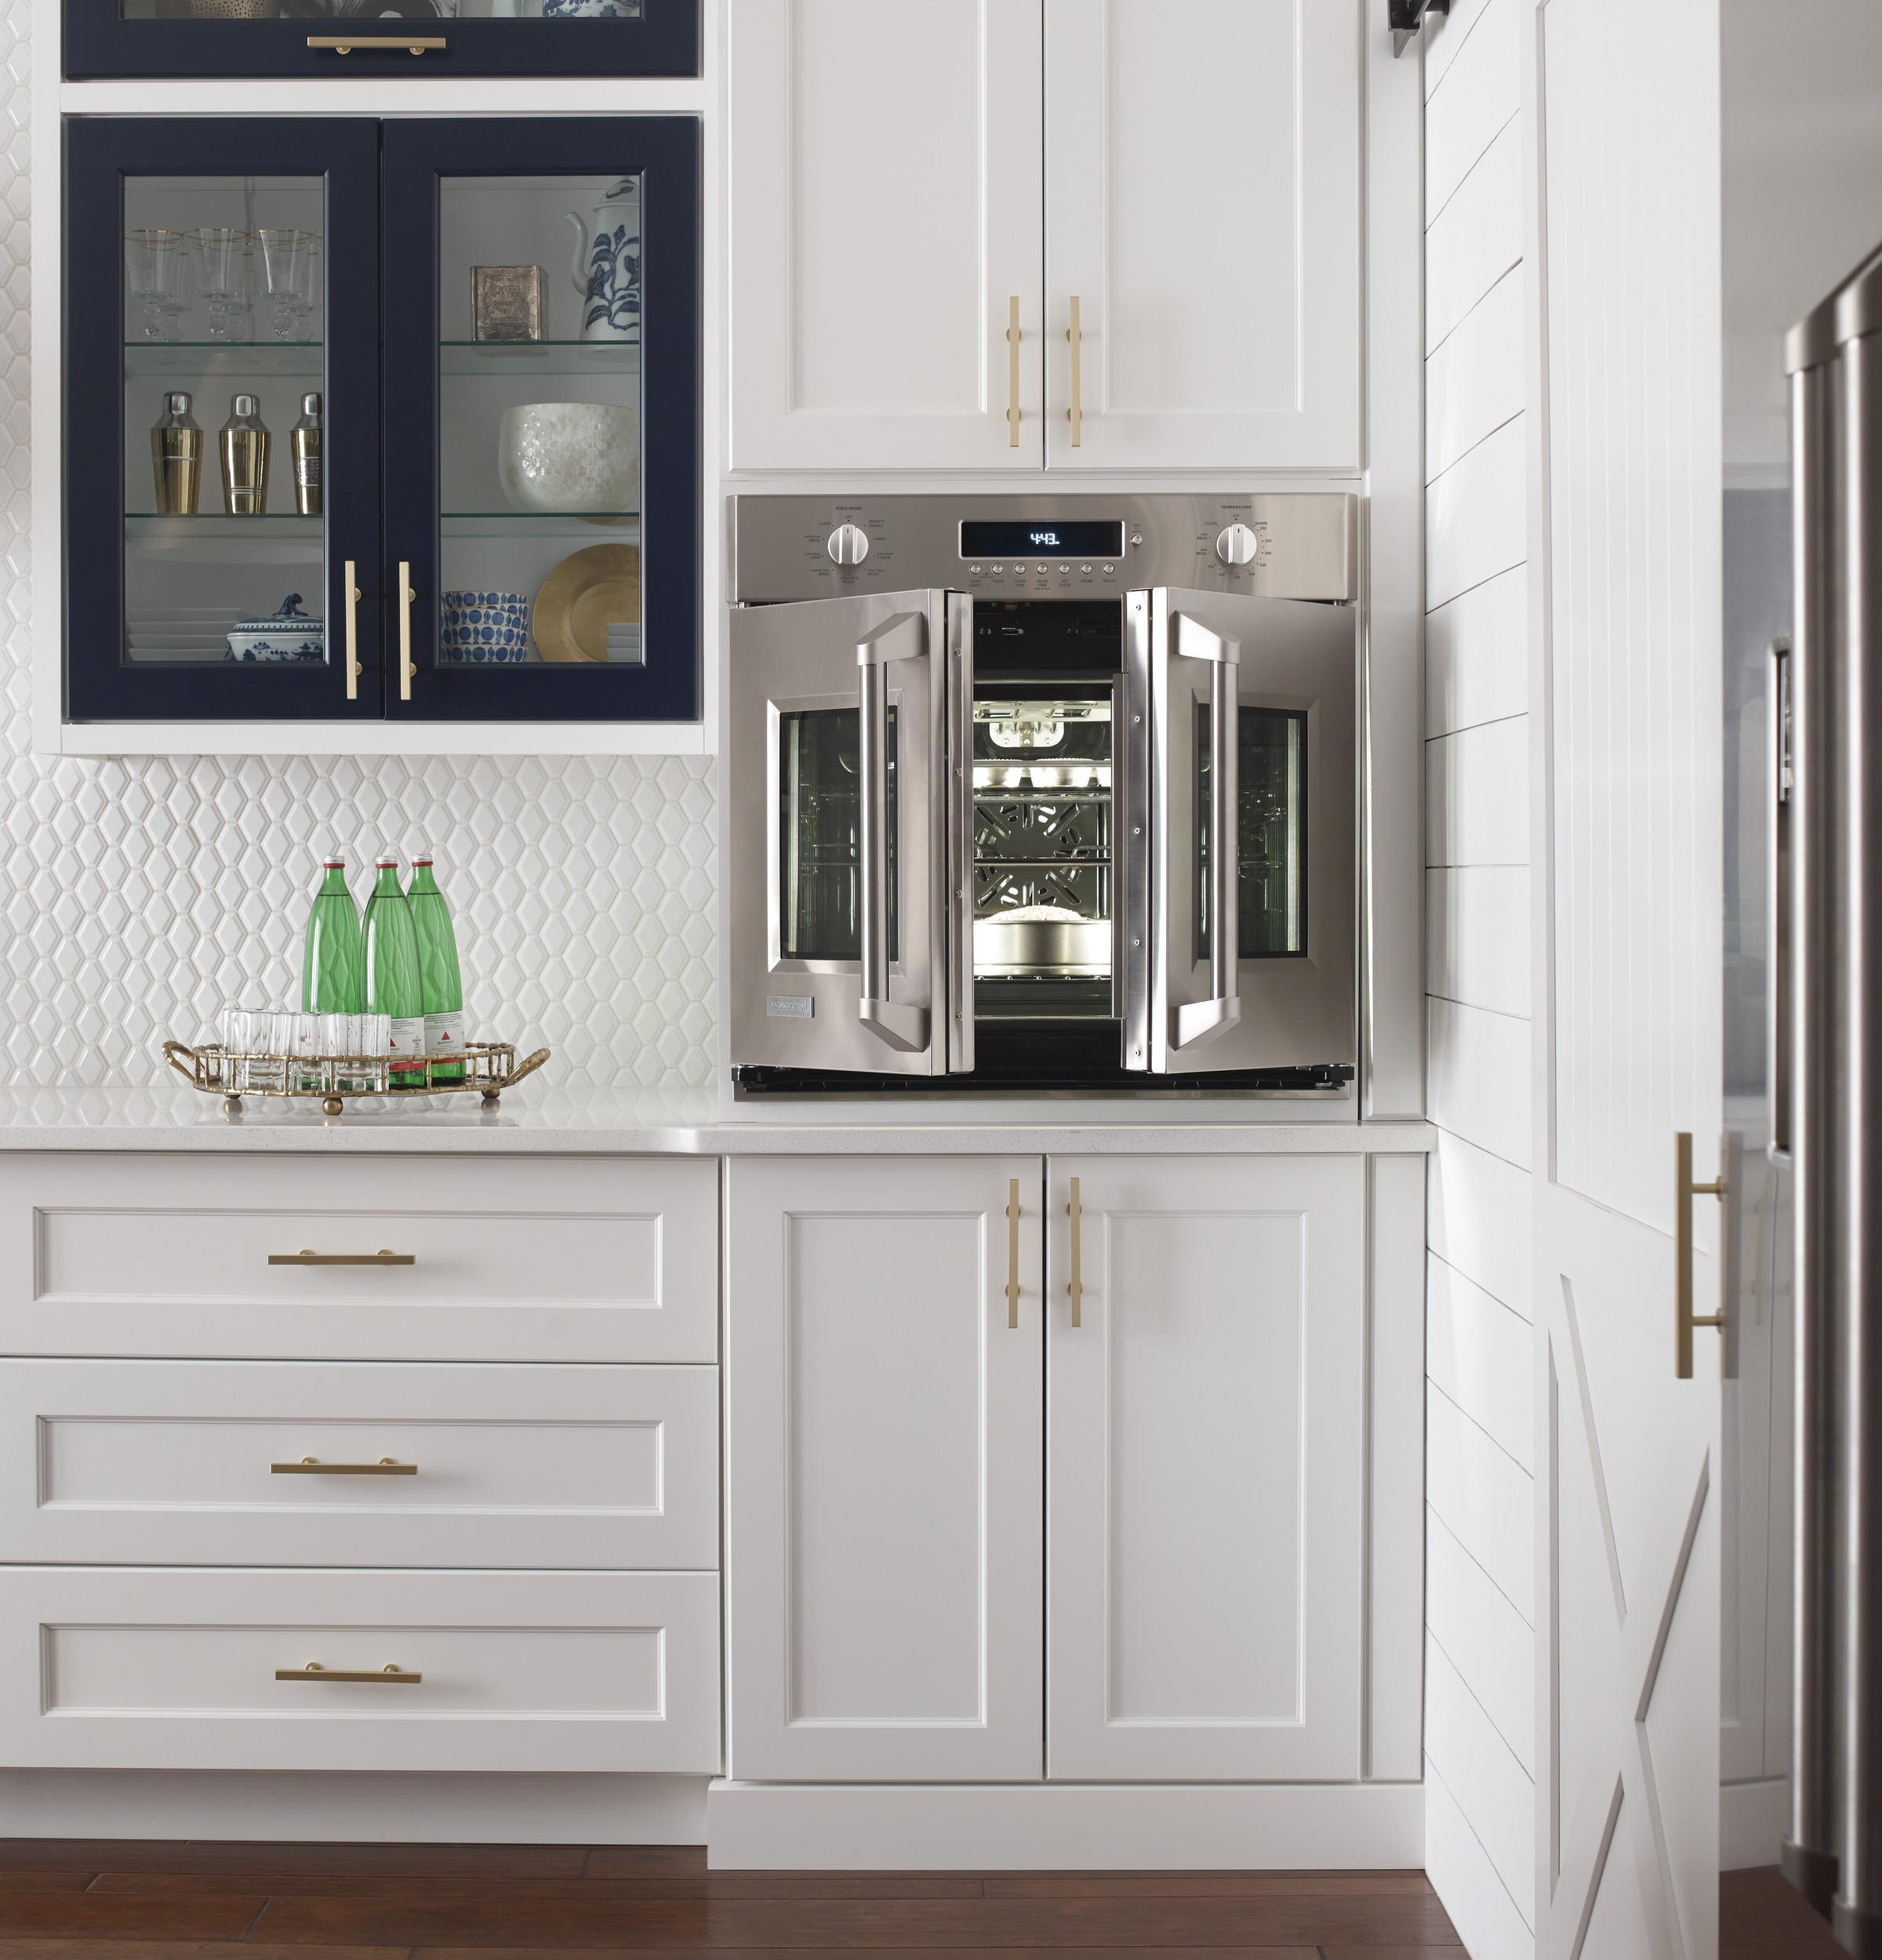 drawer guide sinks dishwasher clearance buying home buy single dishwashers online appliances integrated semi